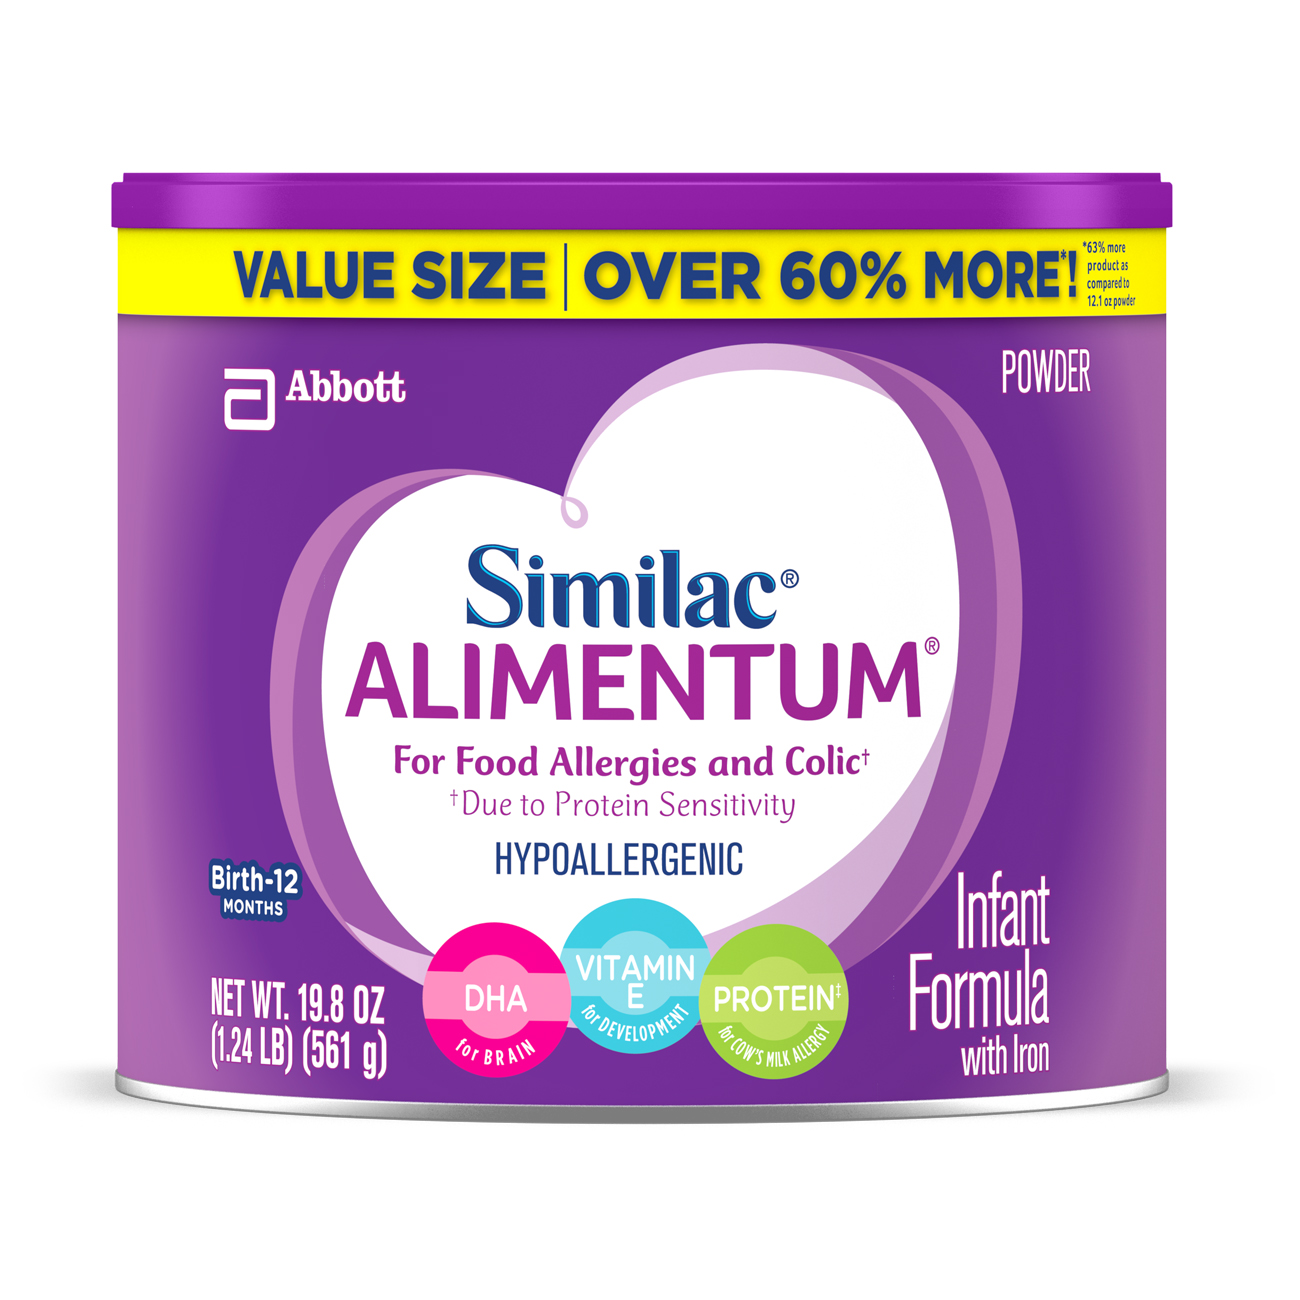 Similac Alimentum Hypoallergenic Baby Formula for Food Allergies and Colic, Value Size, Powder, 19.8 oz (Pack... by Similac